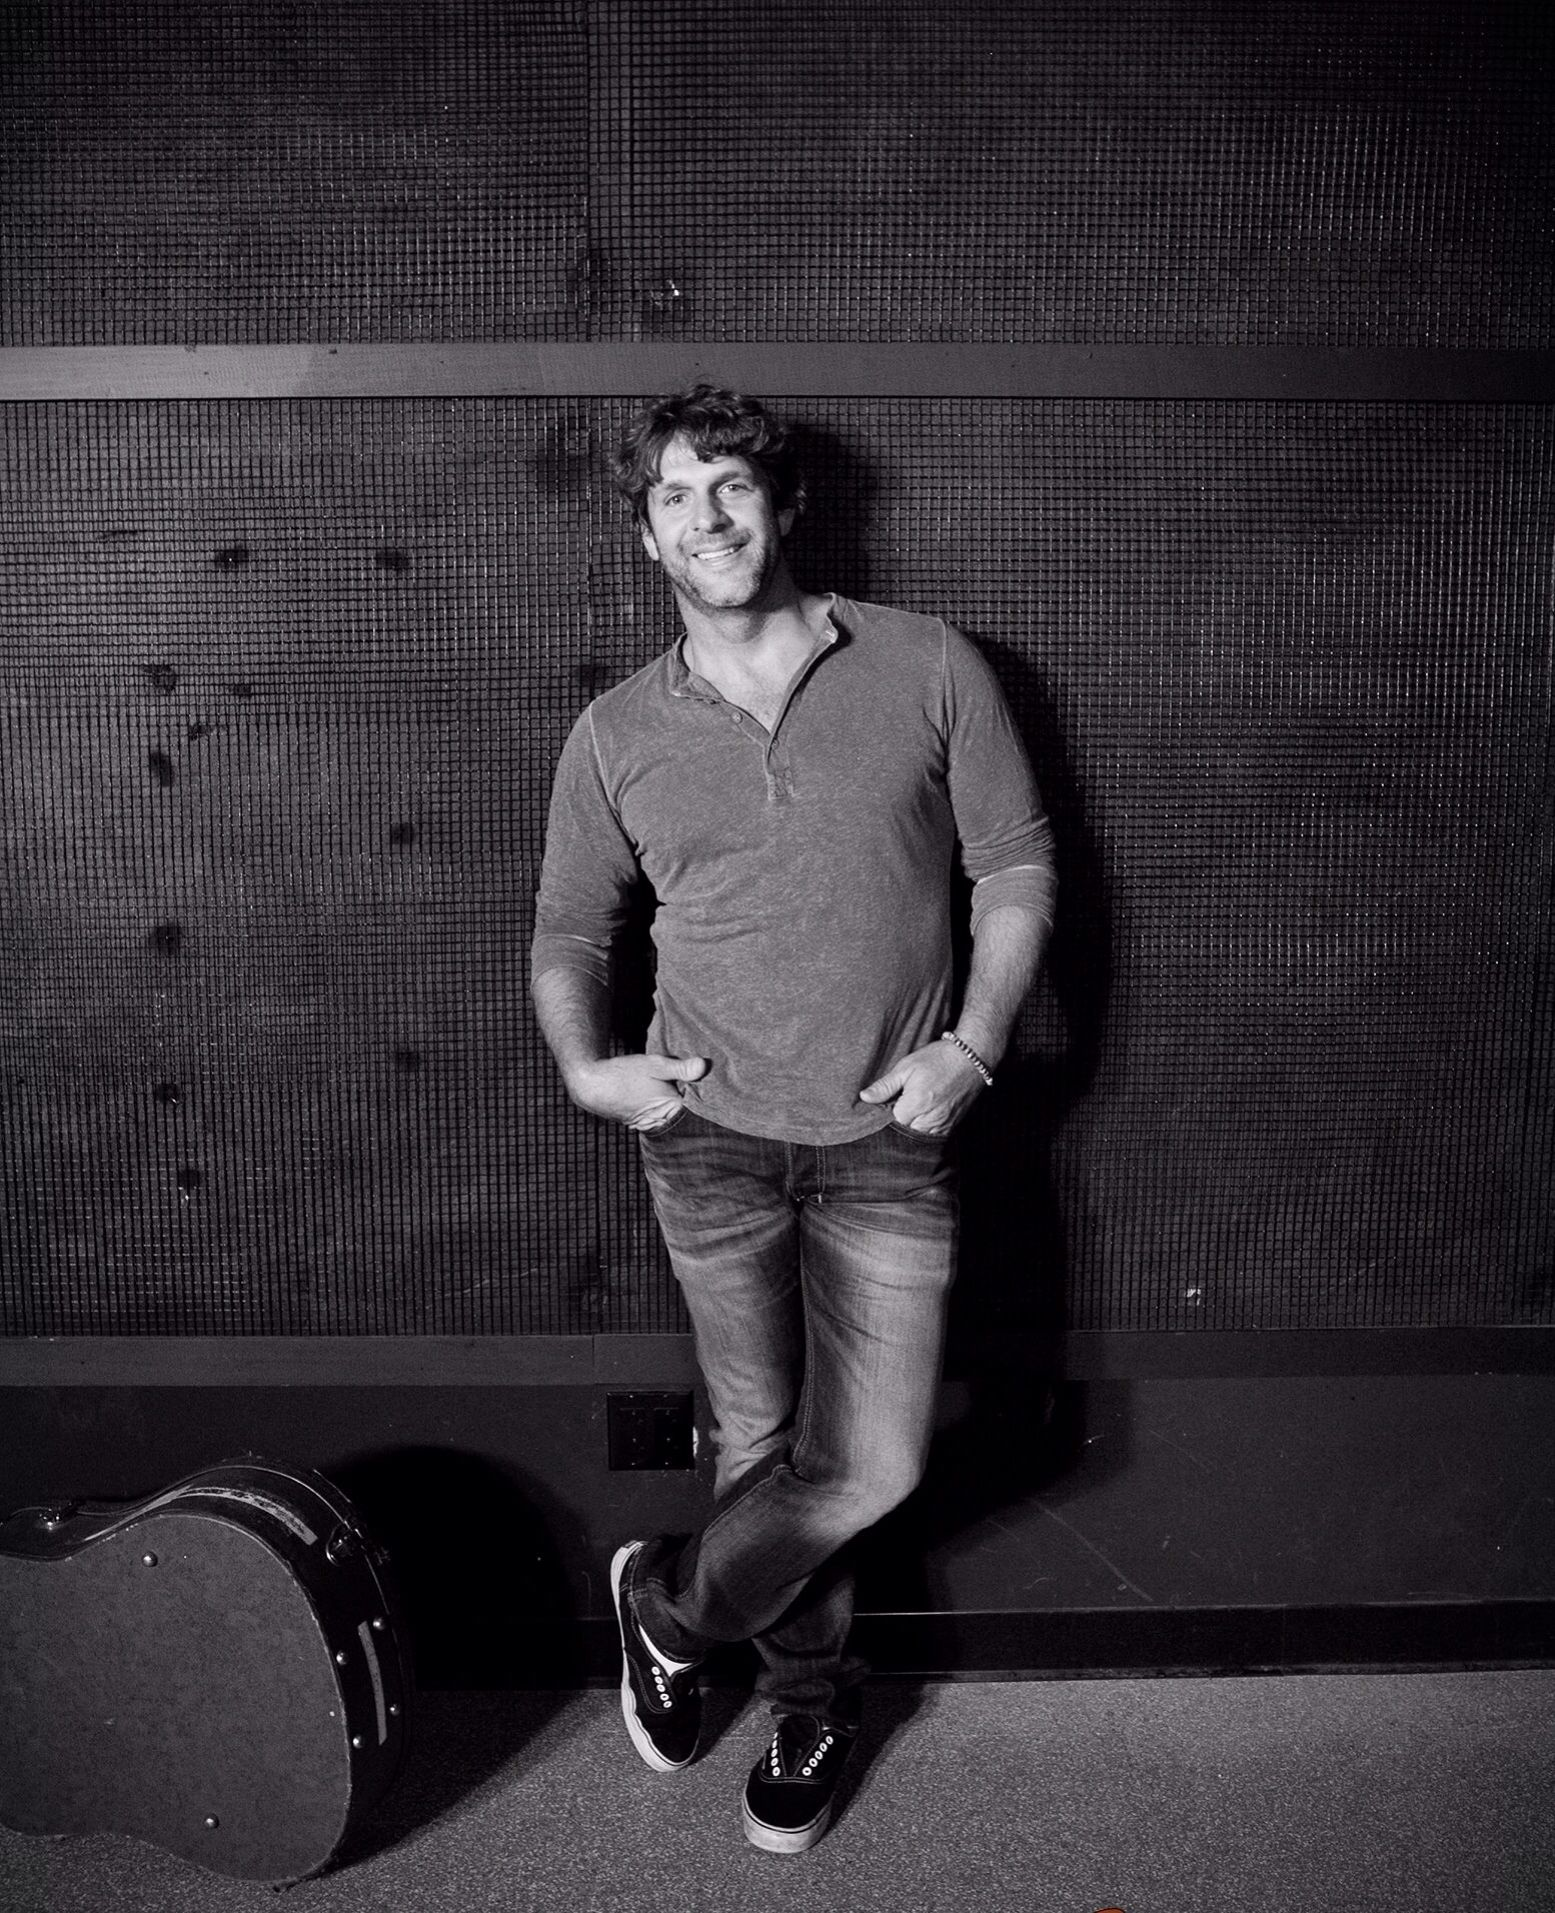 Billy currington in 2020 to my future husband male